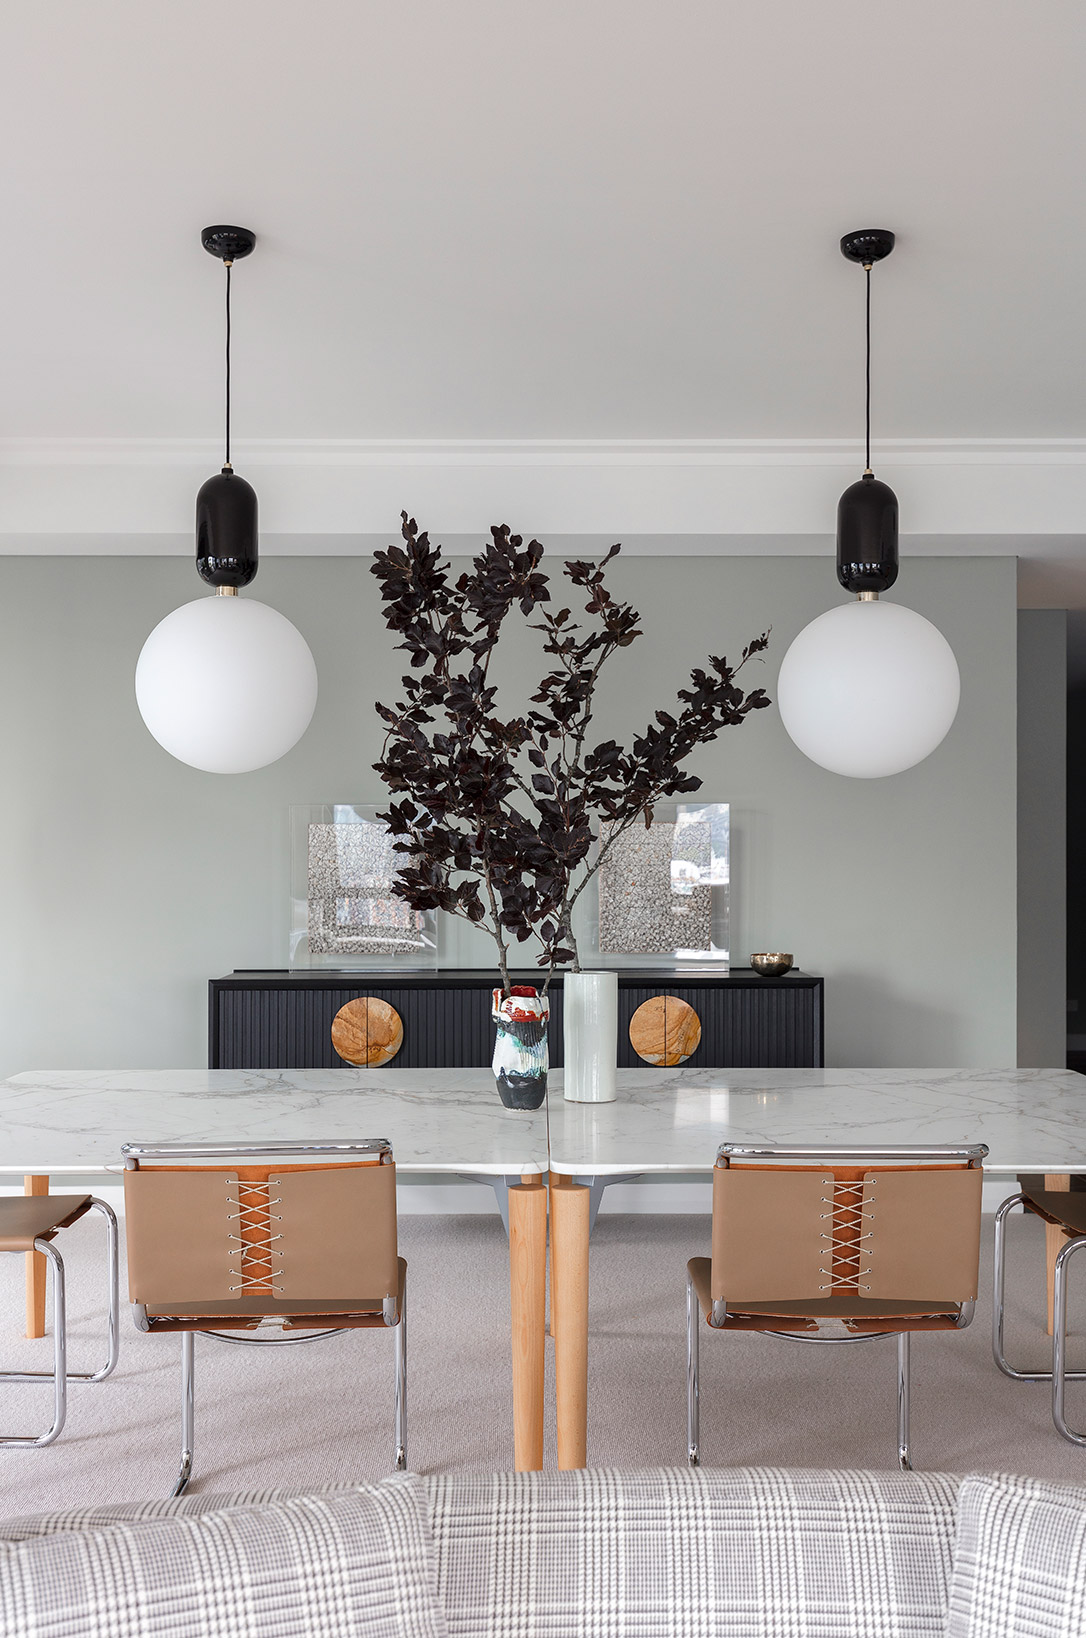 Pyrmont Apartment by Arent & Pyke-The Local Project-Australian Architecture & Design-Image 2